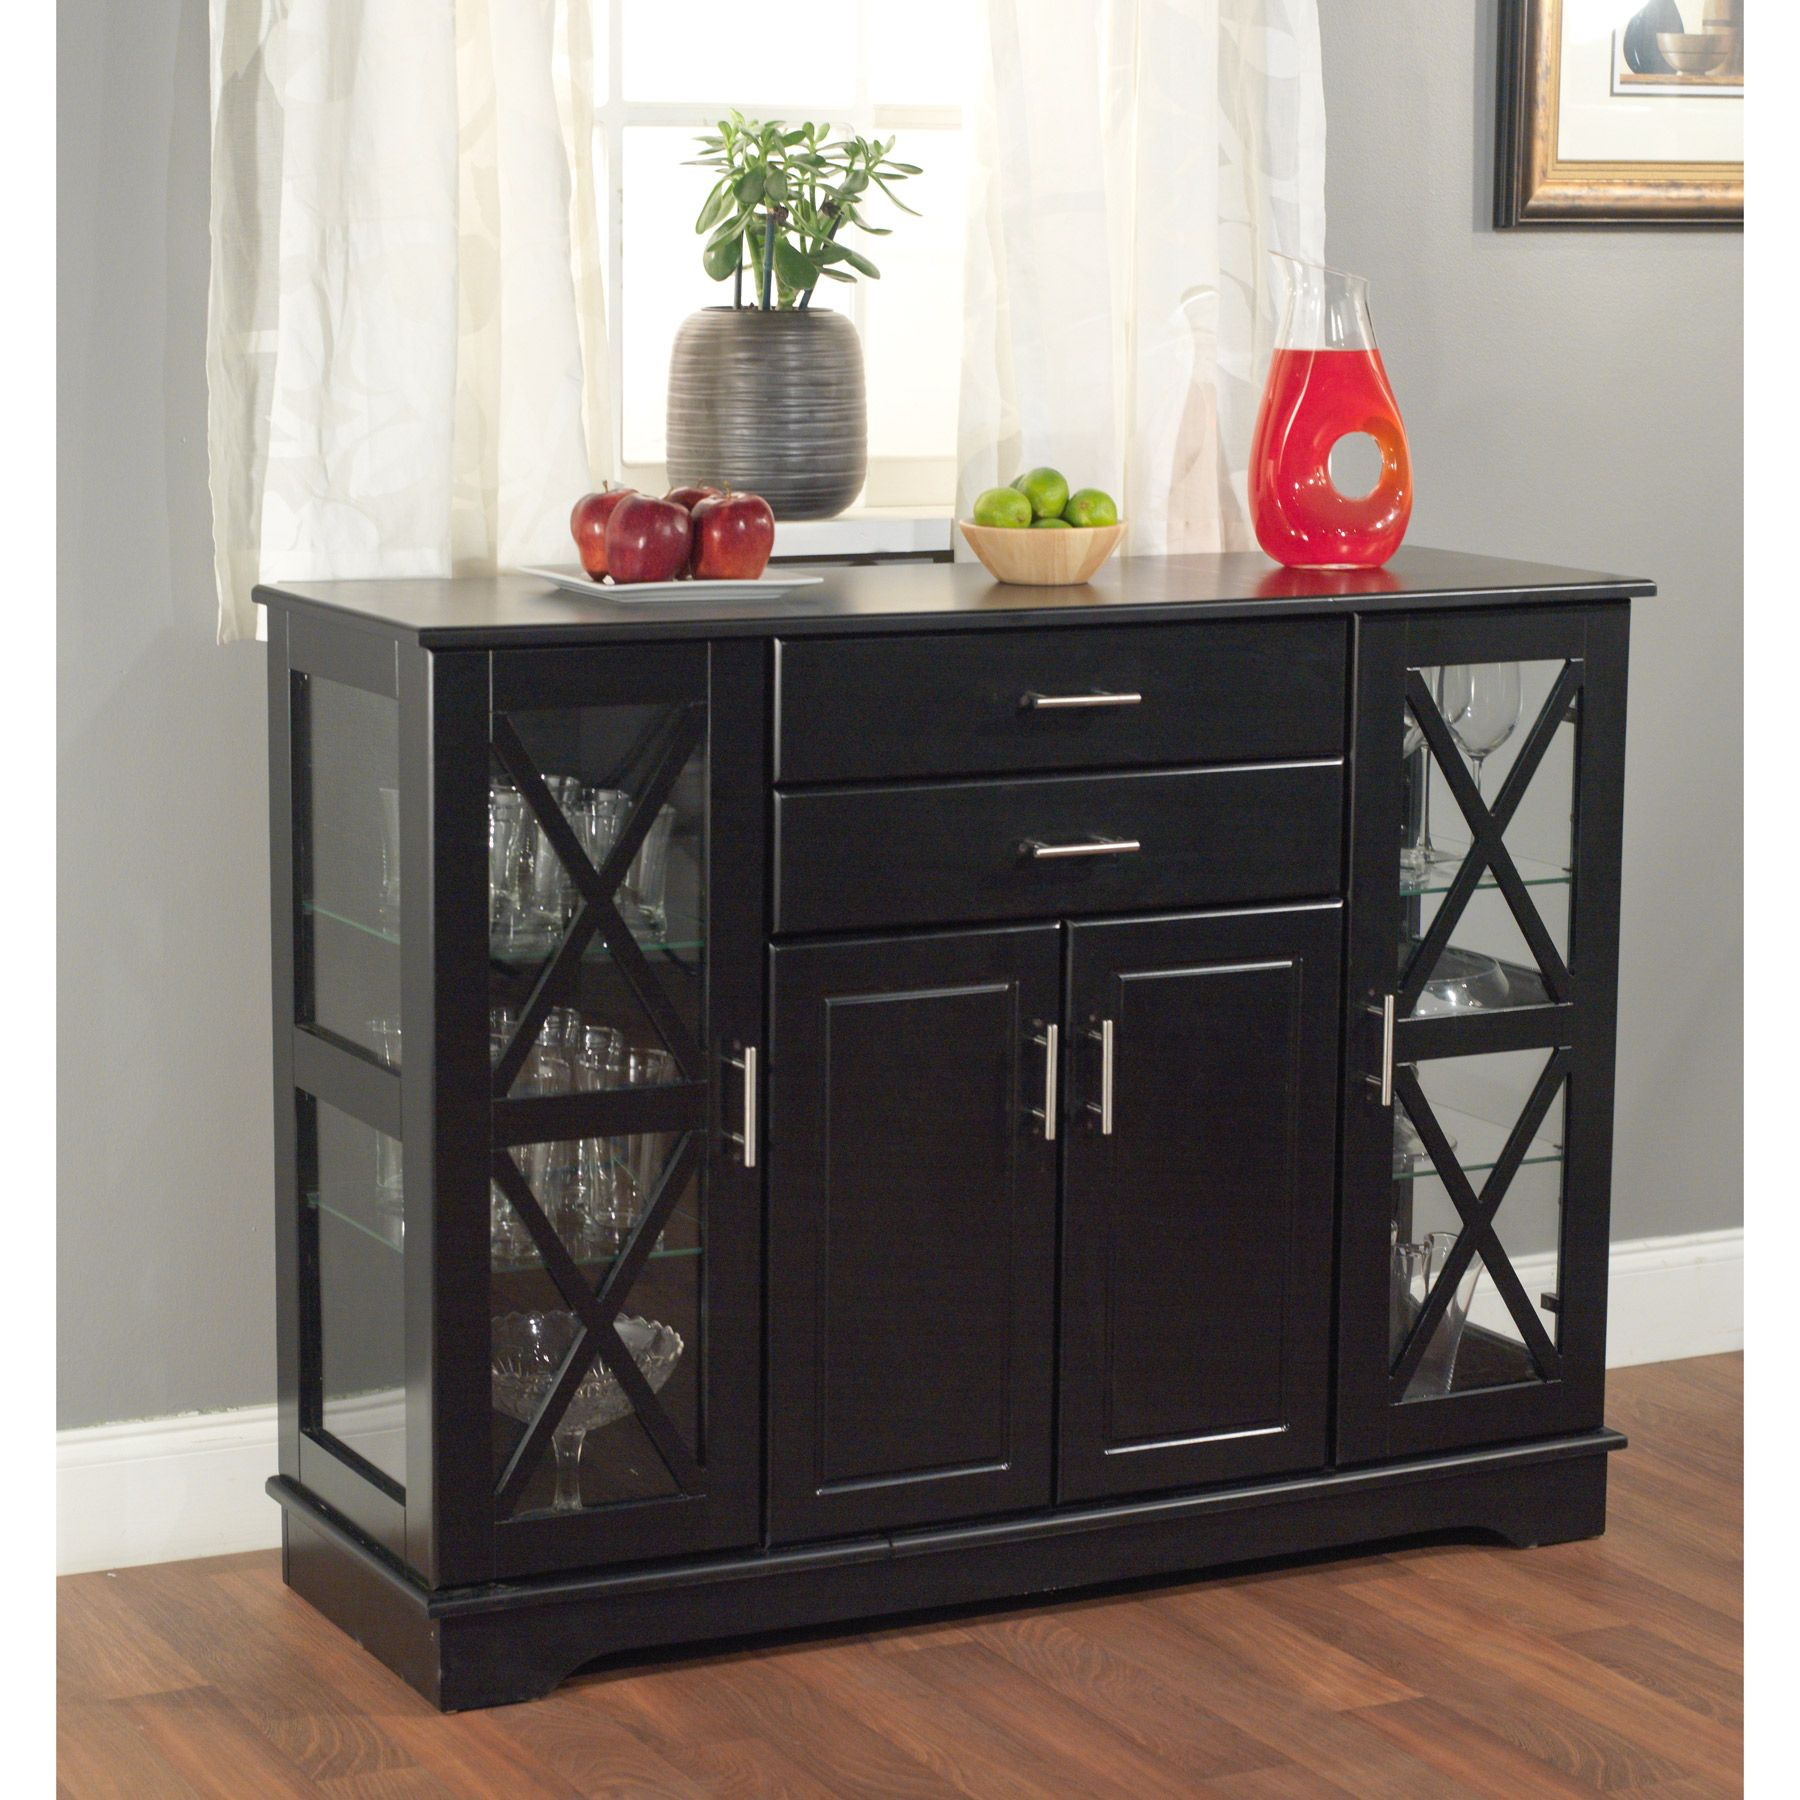 The Kendall Buffet with both glass and solid doors offers a classic